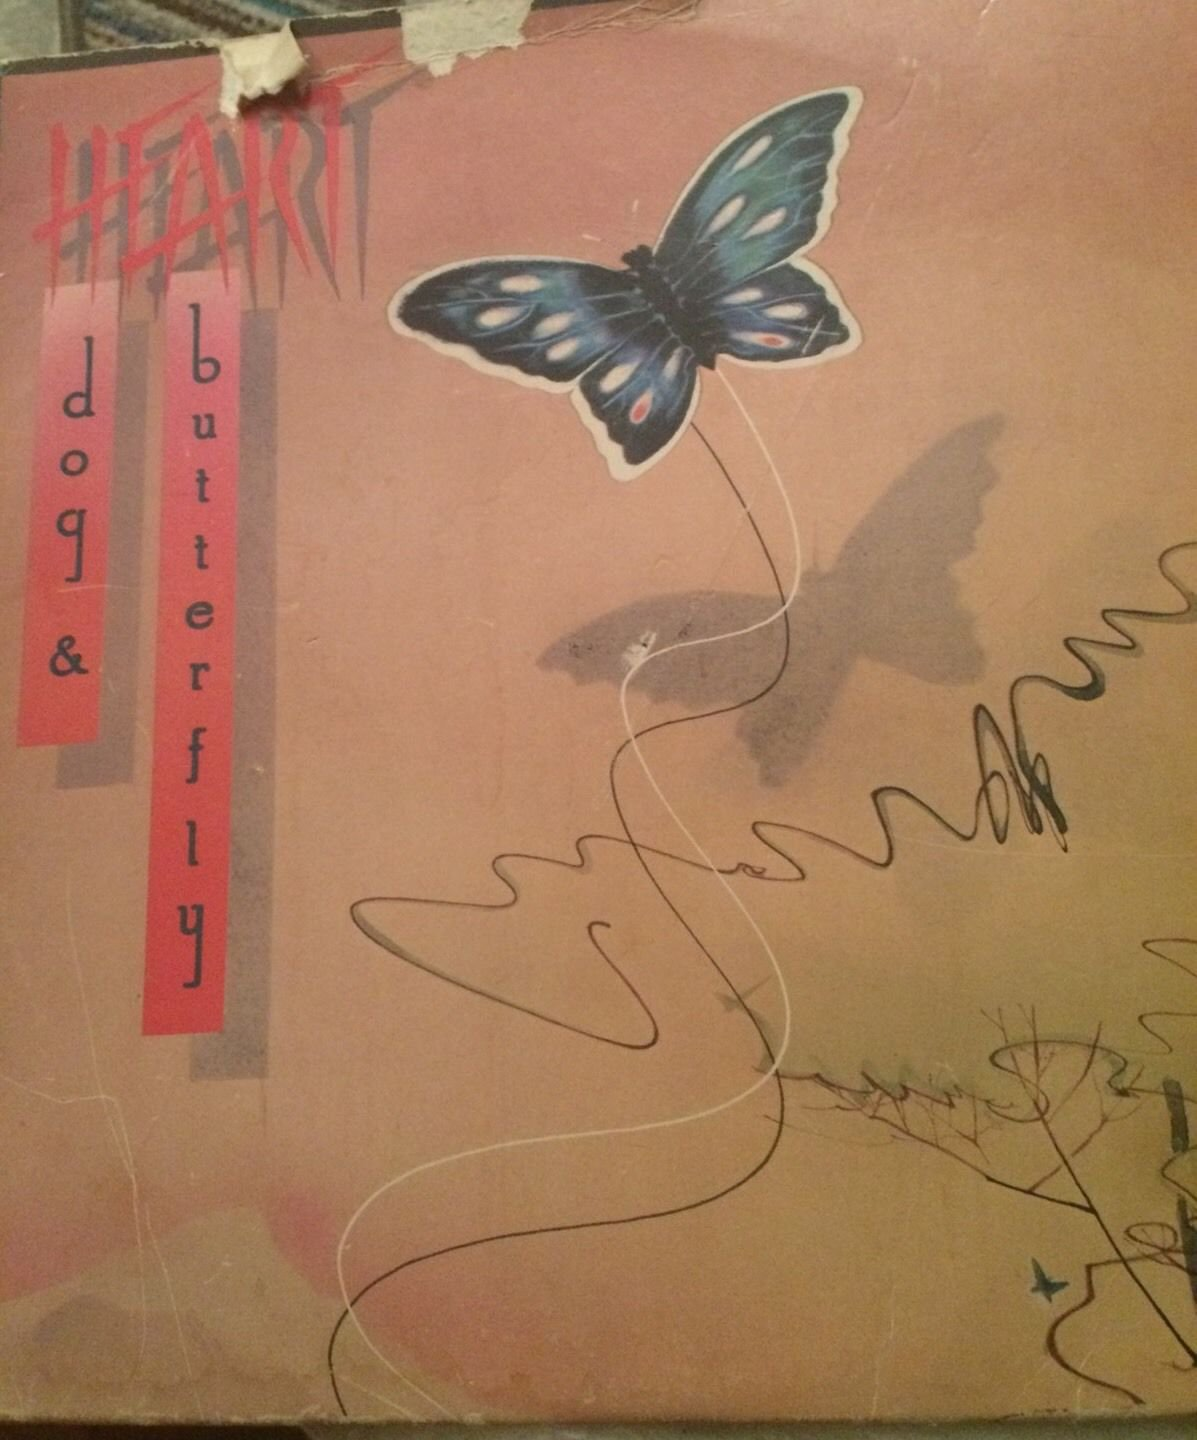 Heart Dog & Butterfly Vinyl LP